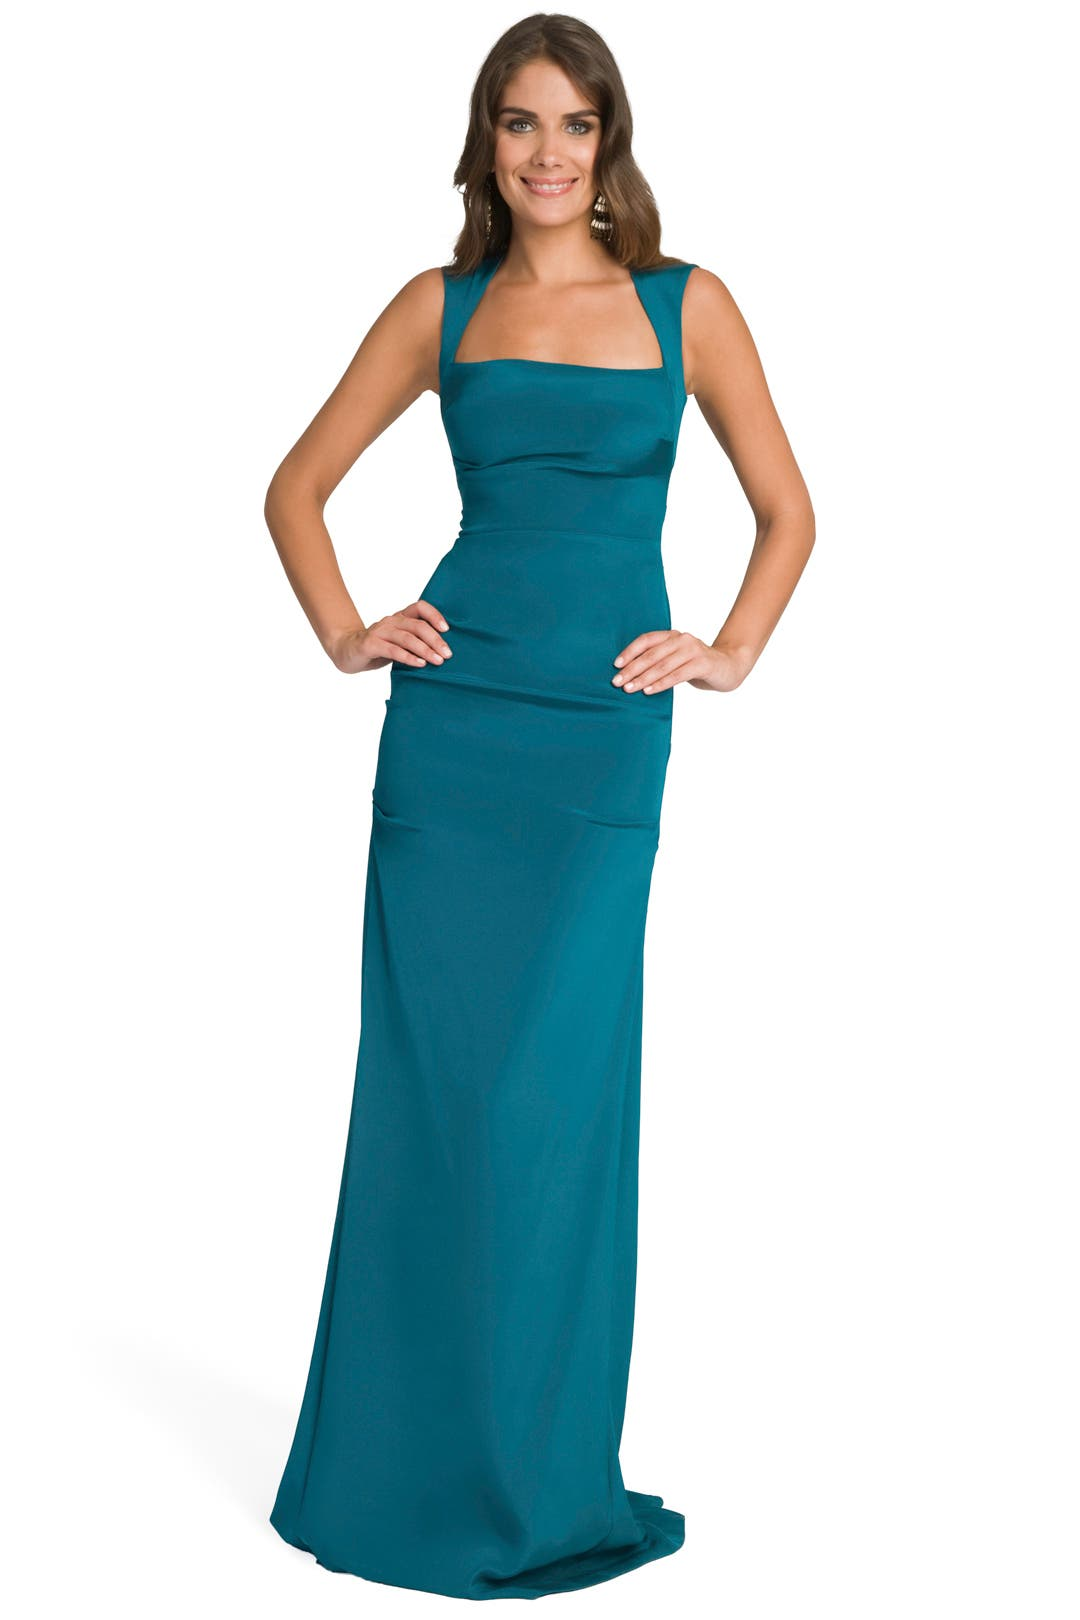 Teal Open Back Gown by Nicole Miller